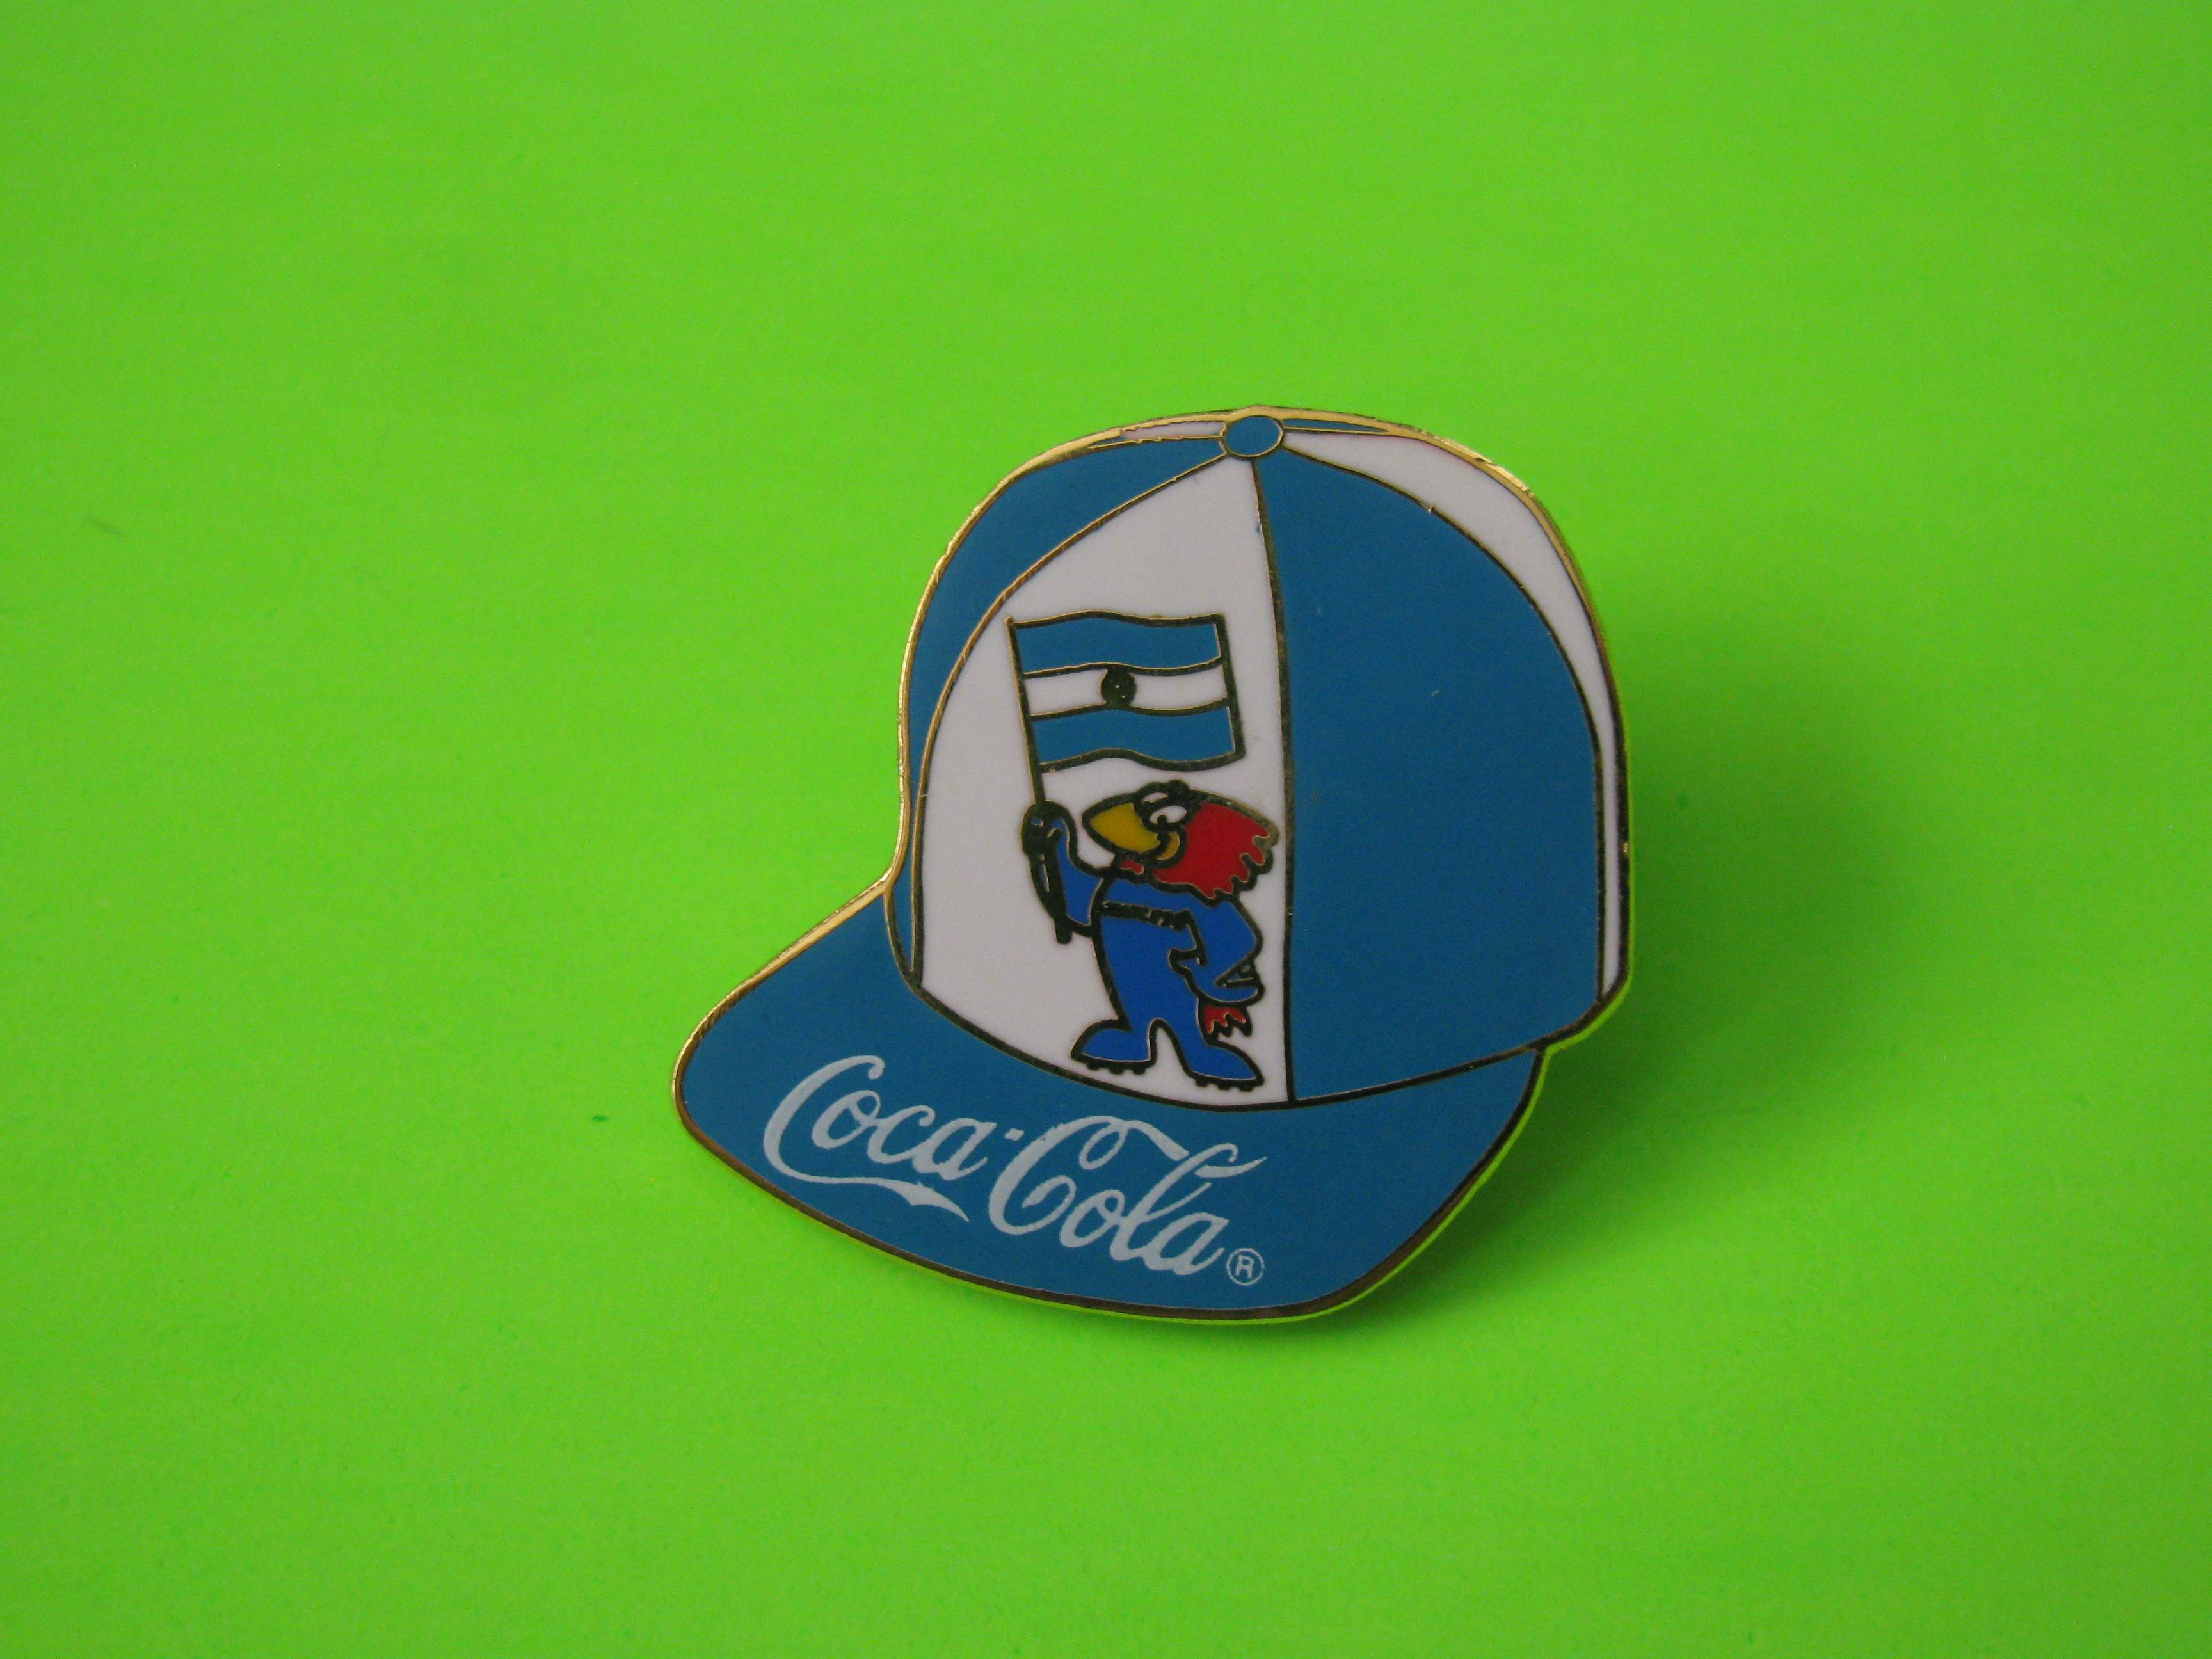 1995 Coca-Cola Promo Soccer Pin, Argentina, Ball Cap Shaped, Metal with Butterfly Clutch